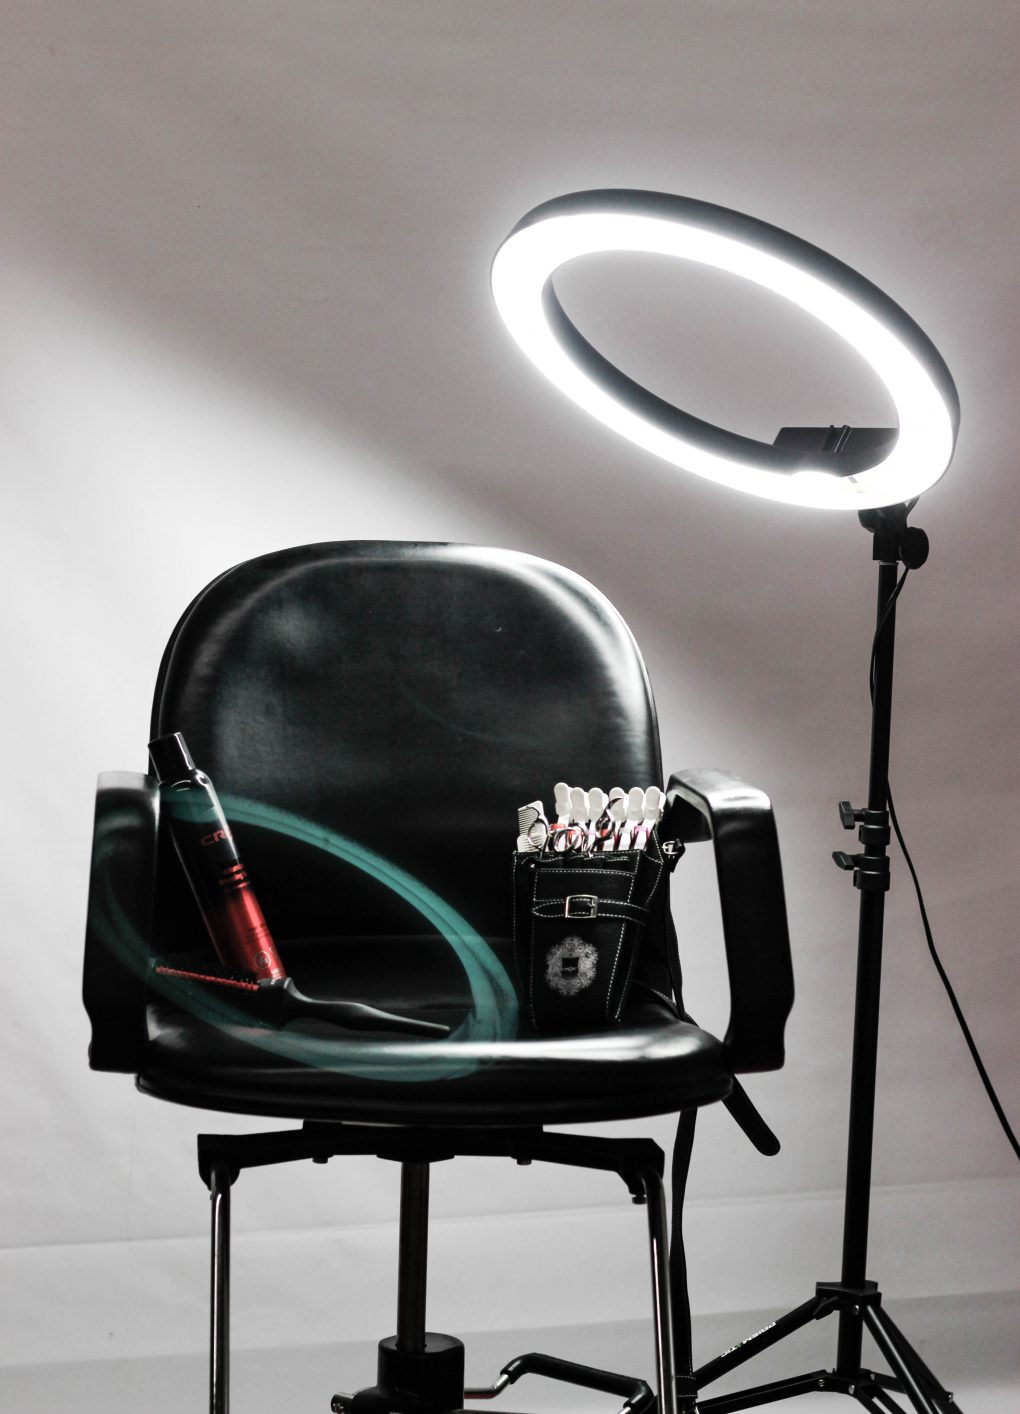 Picture of a directors chair on a film set